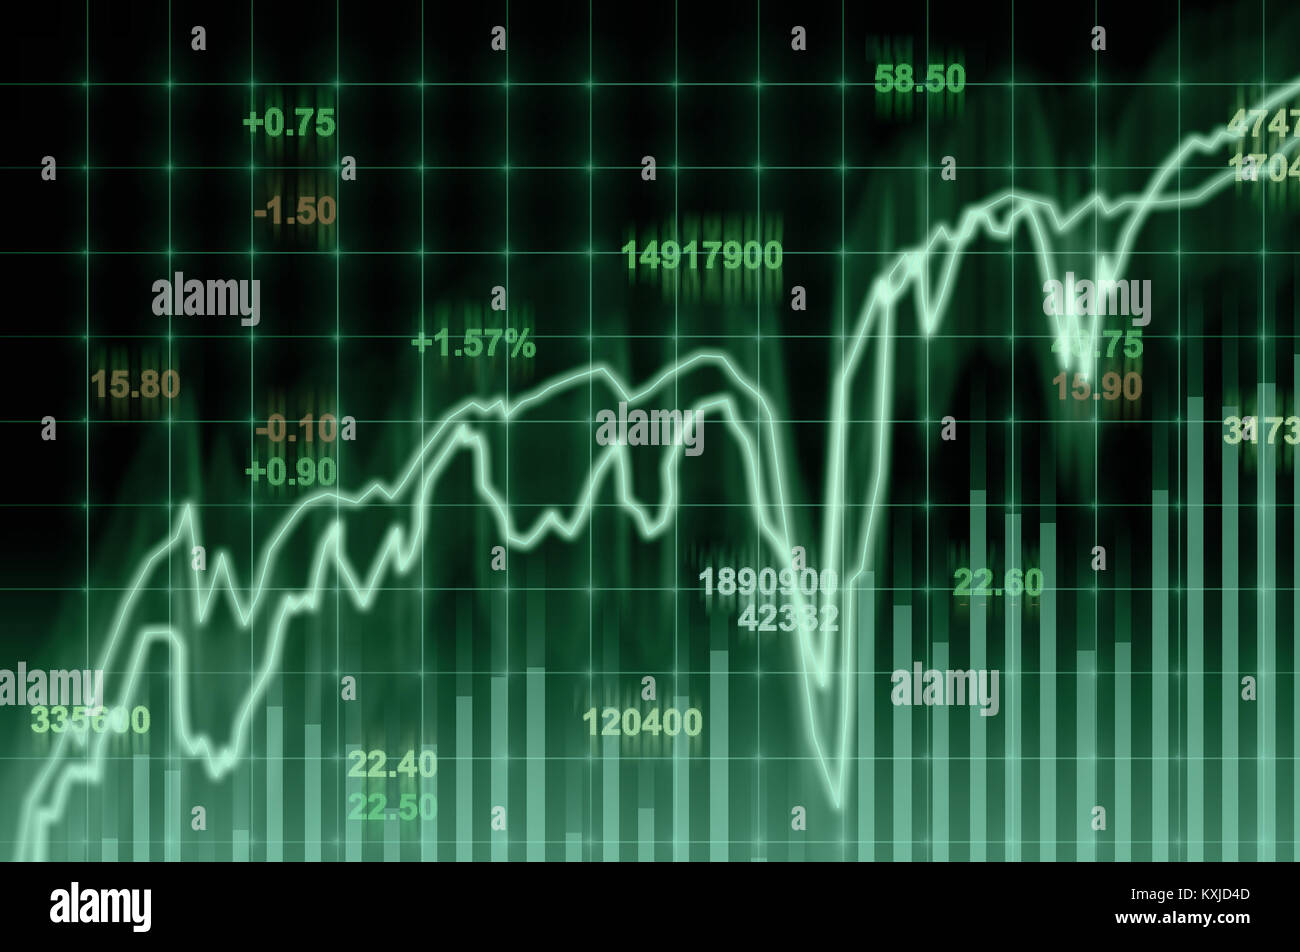 Stock market chart,Closeup Stock market exchange data on LED